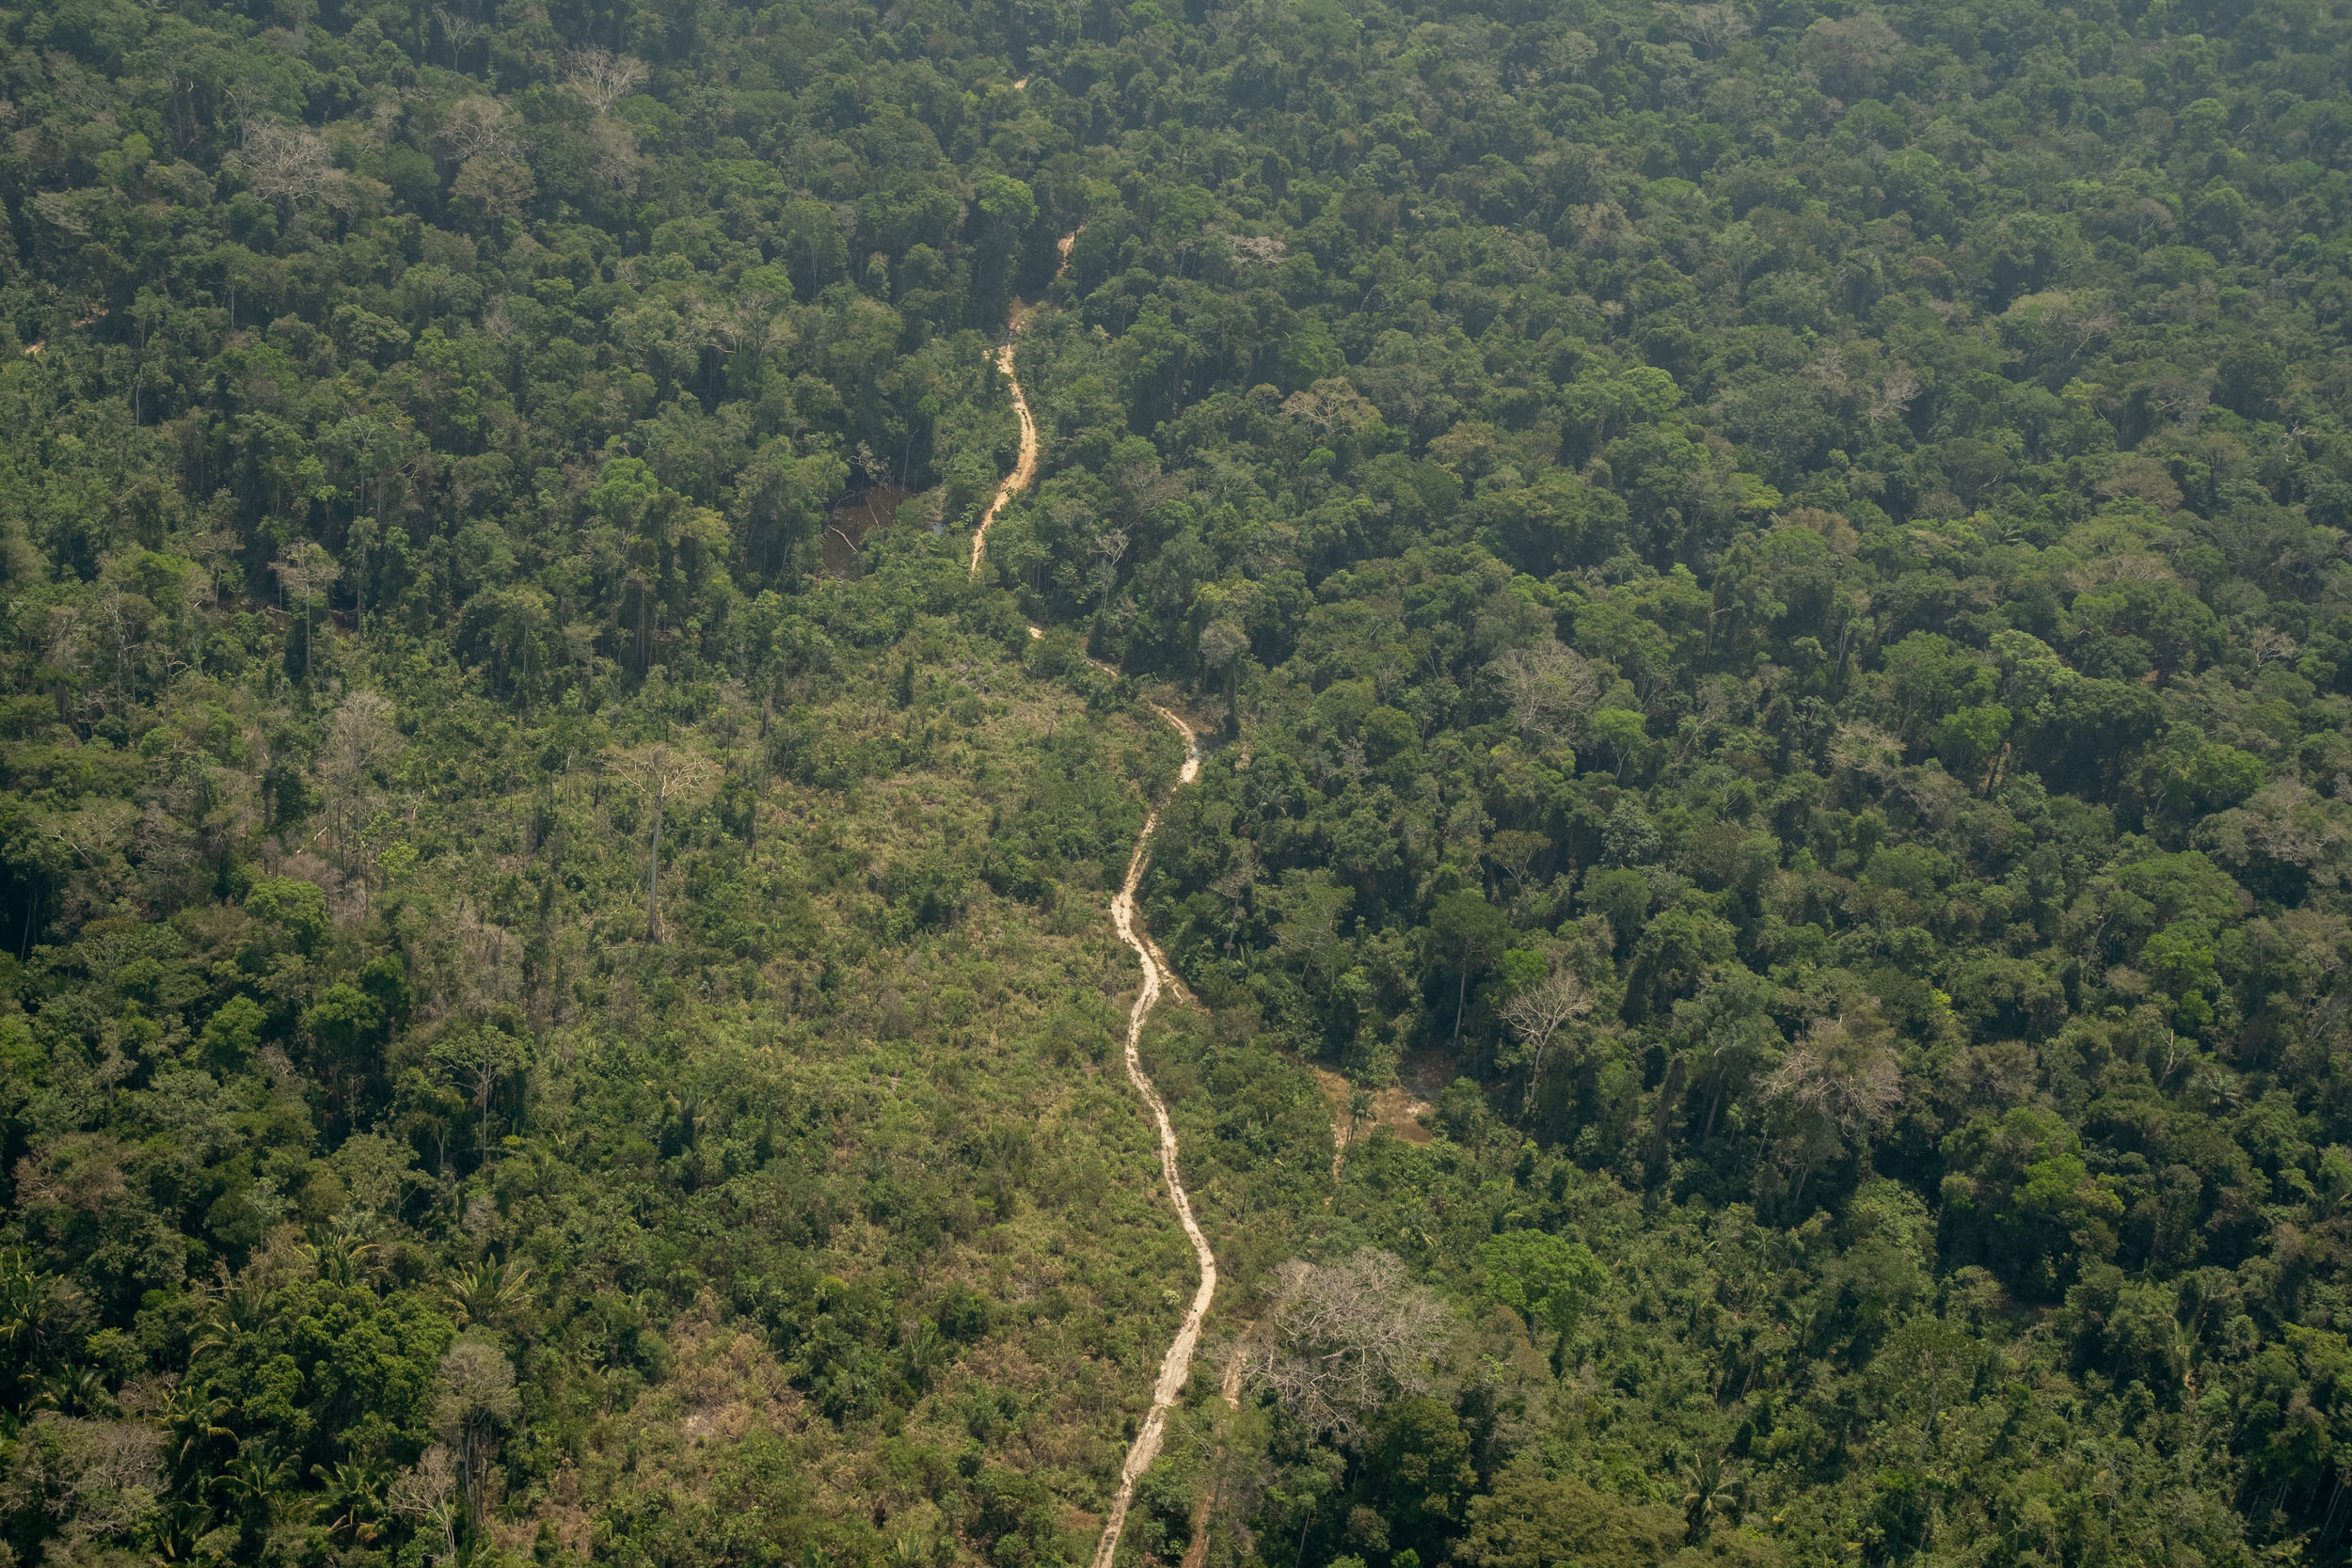 An aerial view of a road cut through the rainforest surrounded by lower-density trees where deforestation has taken place.